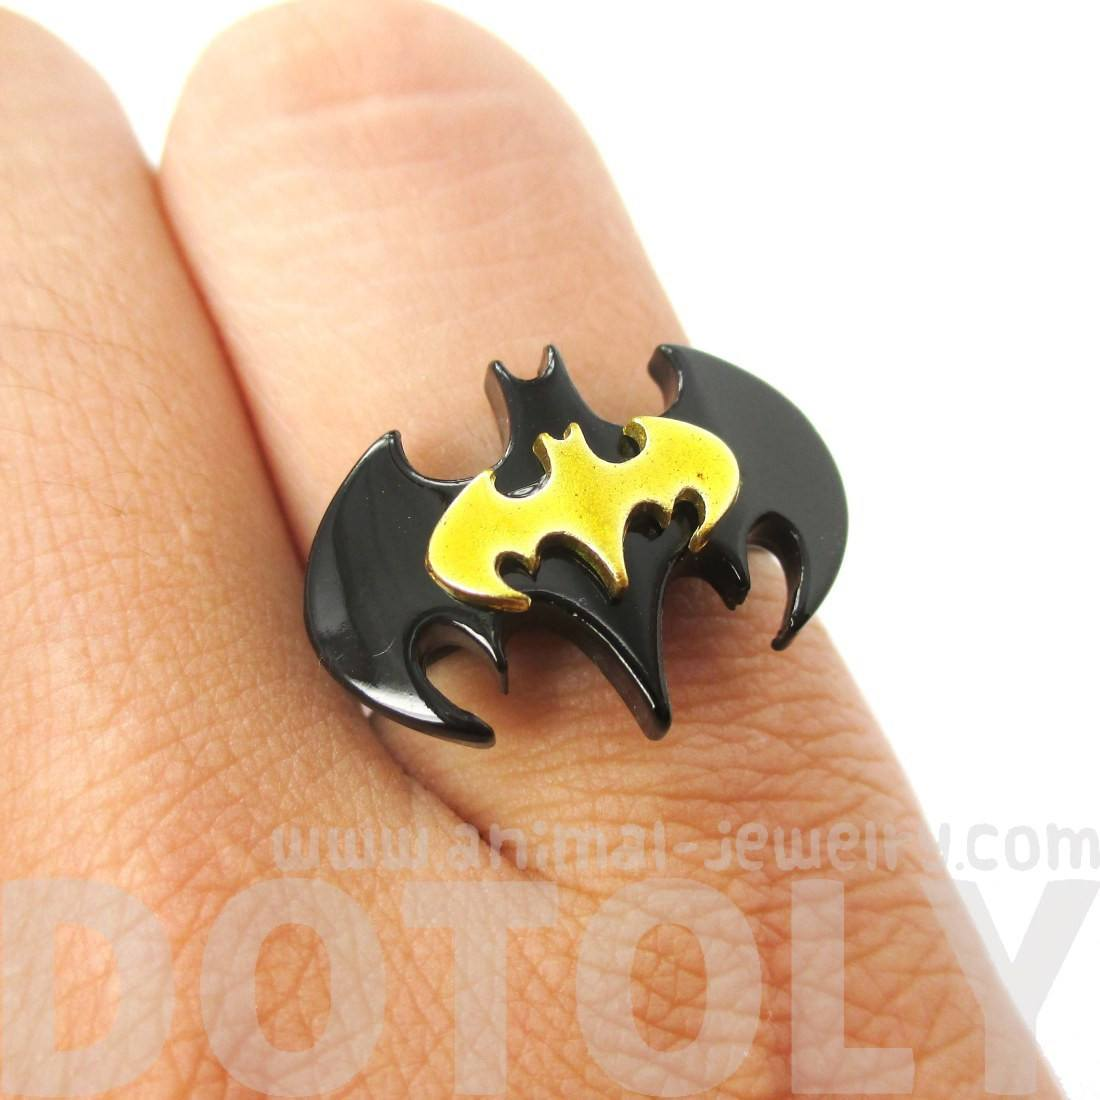 Batman Bat Shaped Silhouette Logo Adjustable Ring in Black